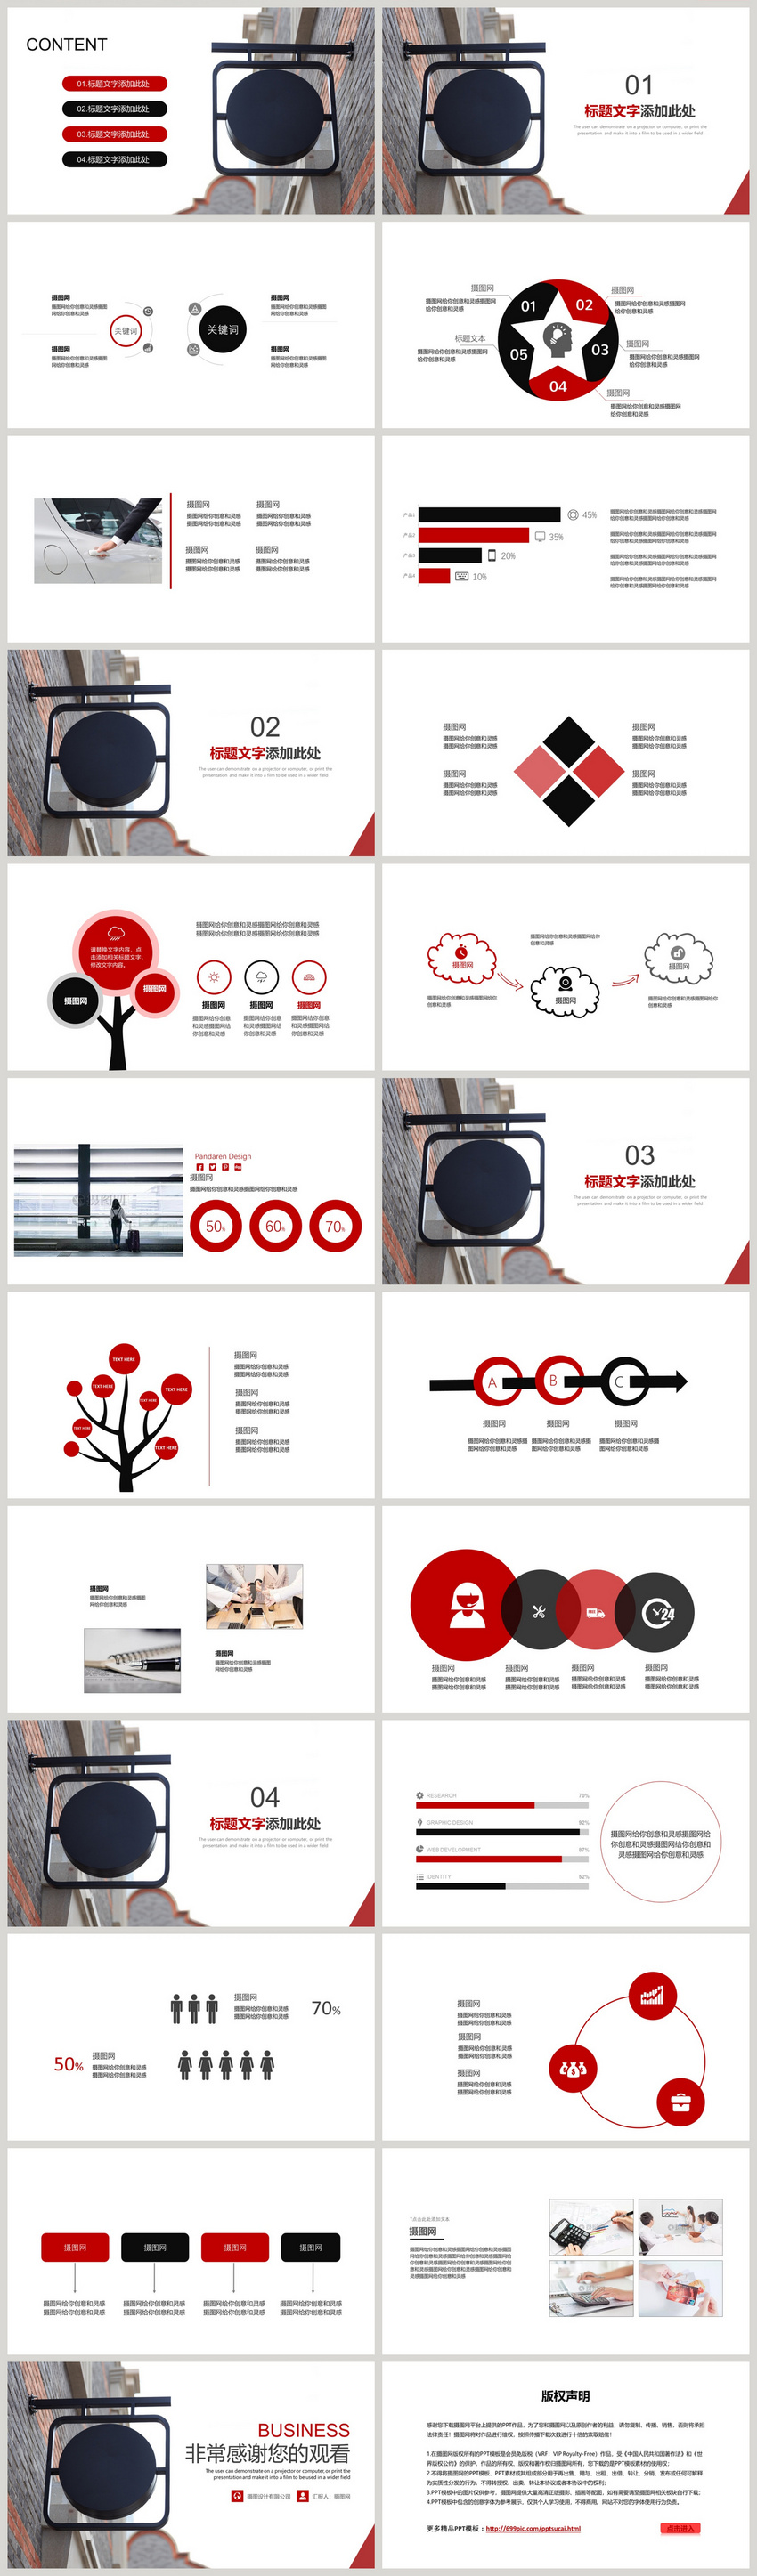 Fashion business management training ppt template powerpoint